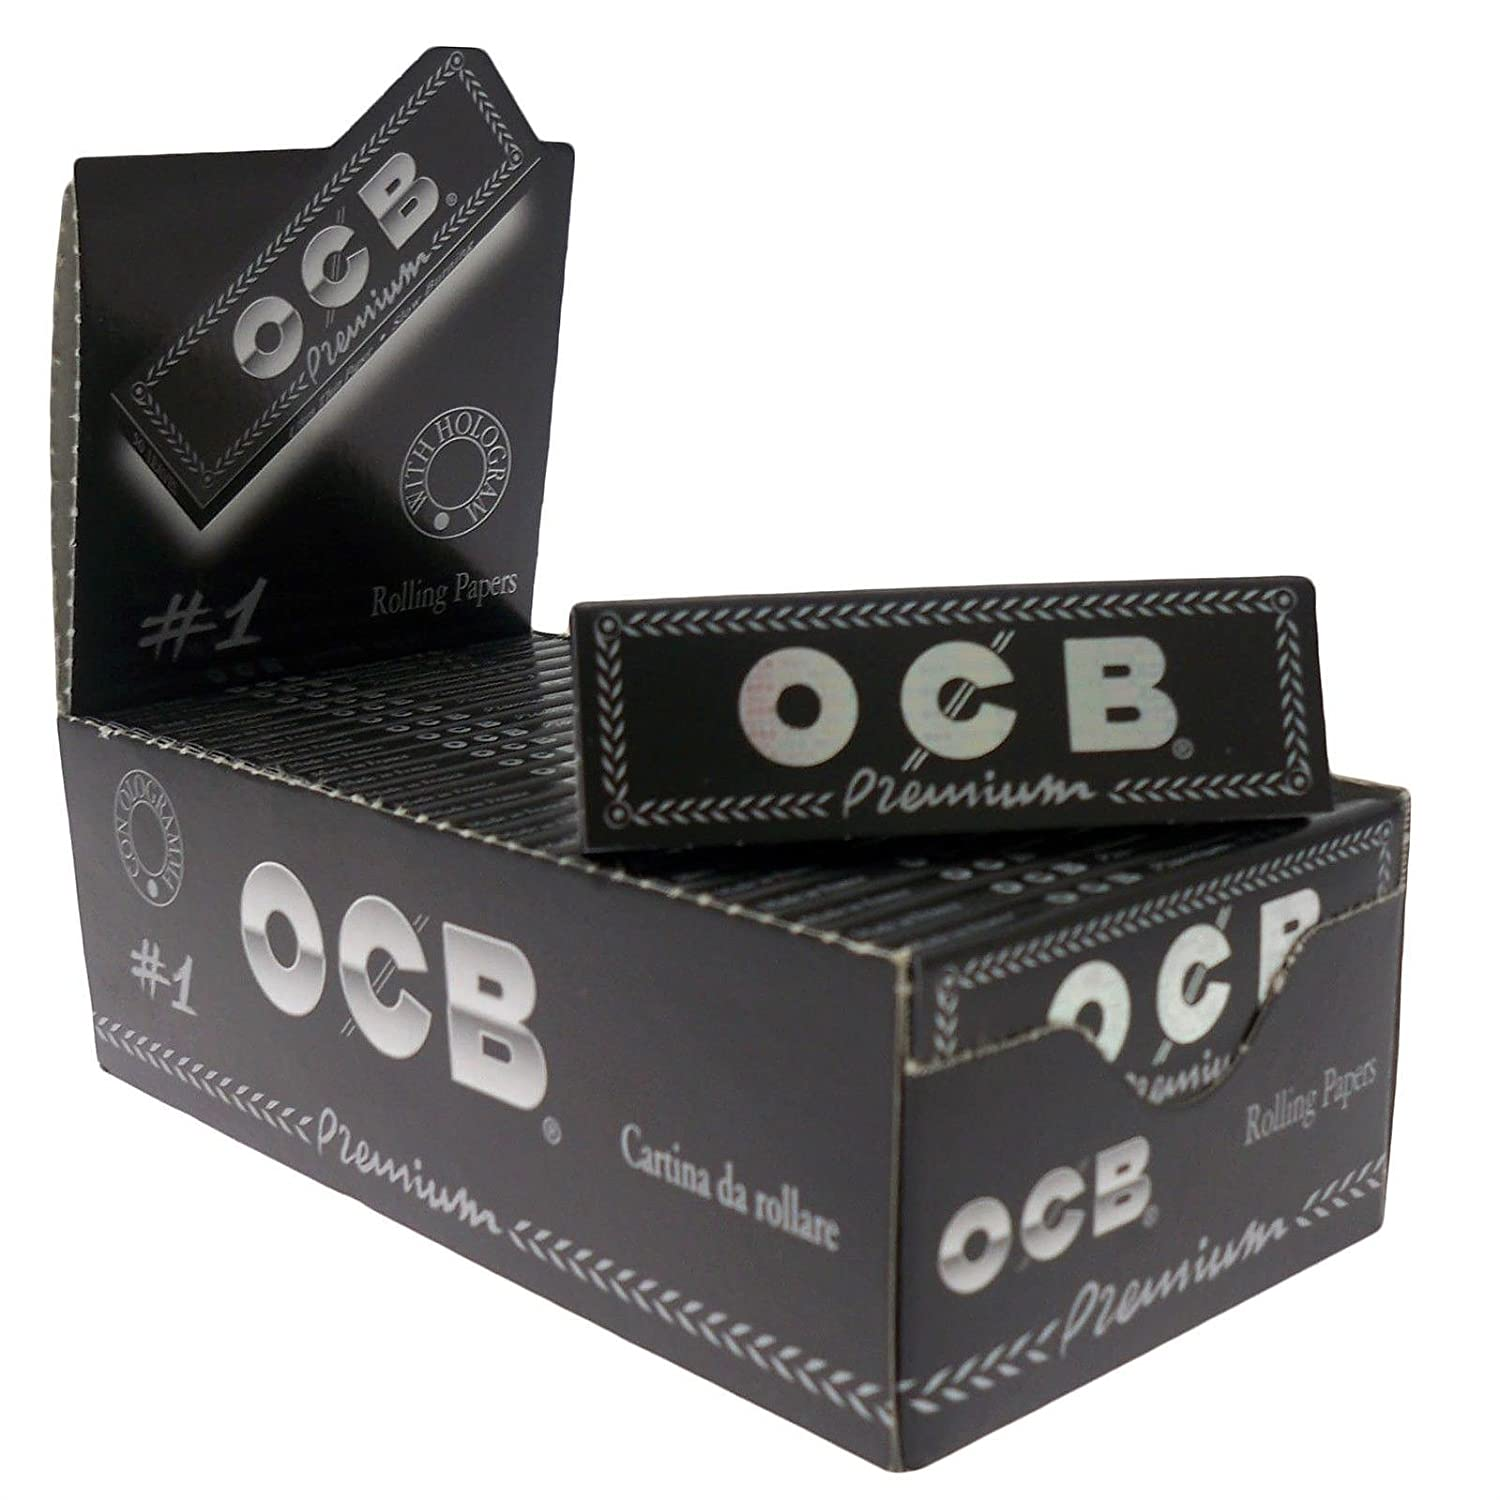 1 box - OCB Single Premium No1 rolling paper regular size 70mm - 2500 papers 012010.02